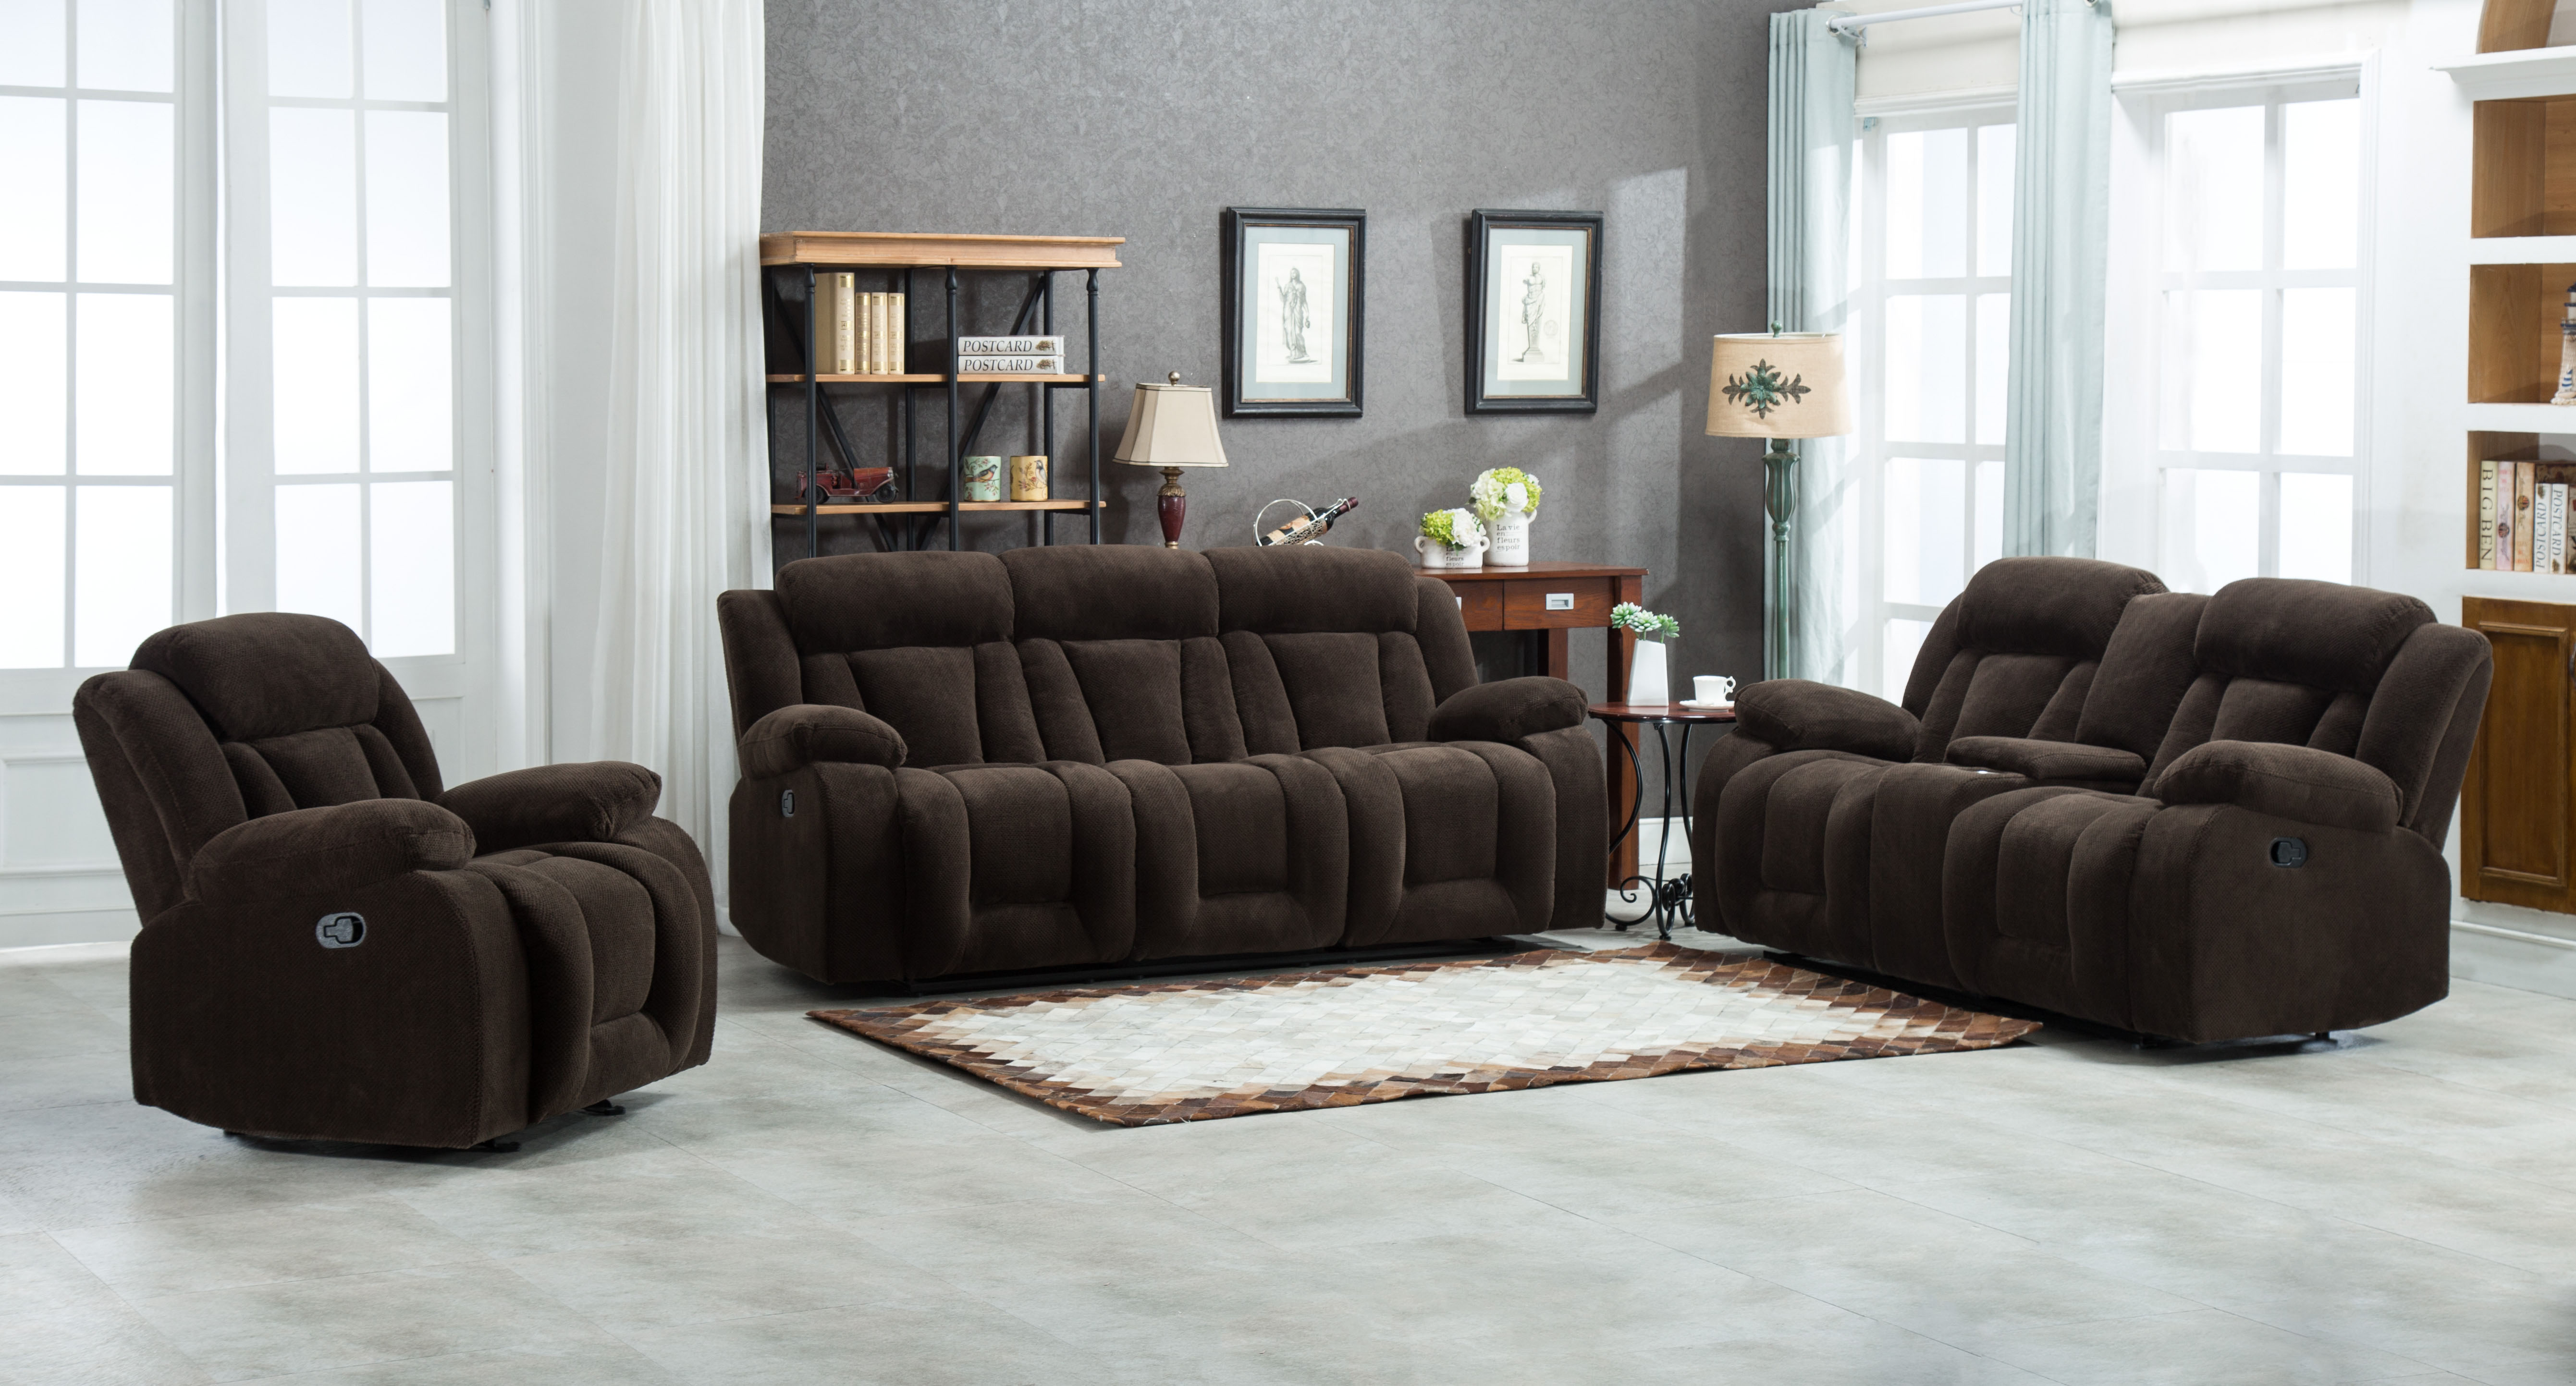 8047 3pc Fabric Living Room Set, Fabric Living Room Sets With Recliner